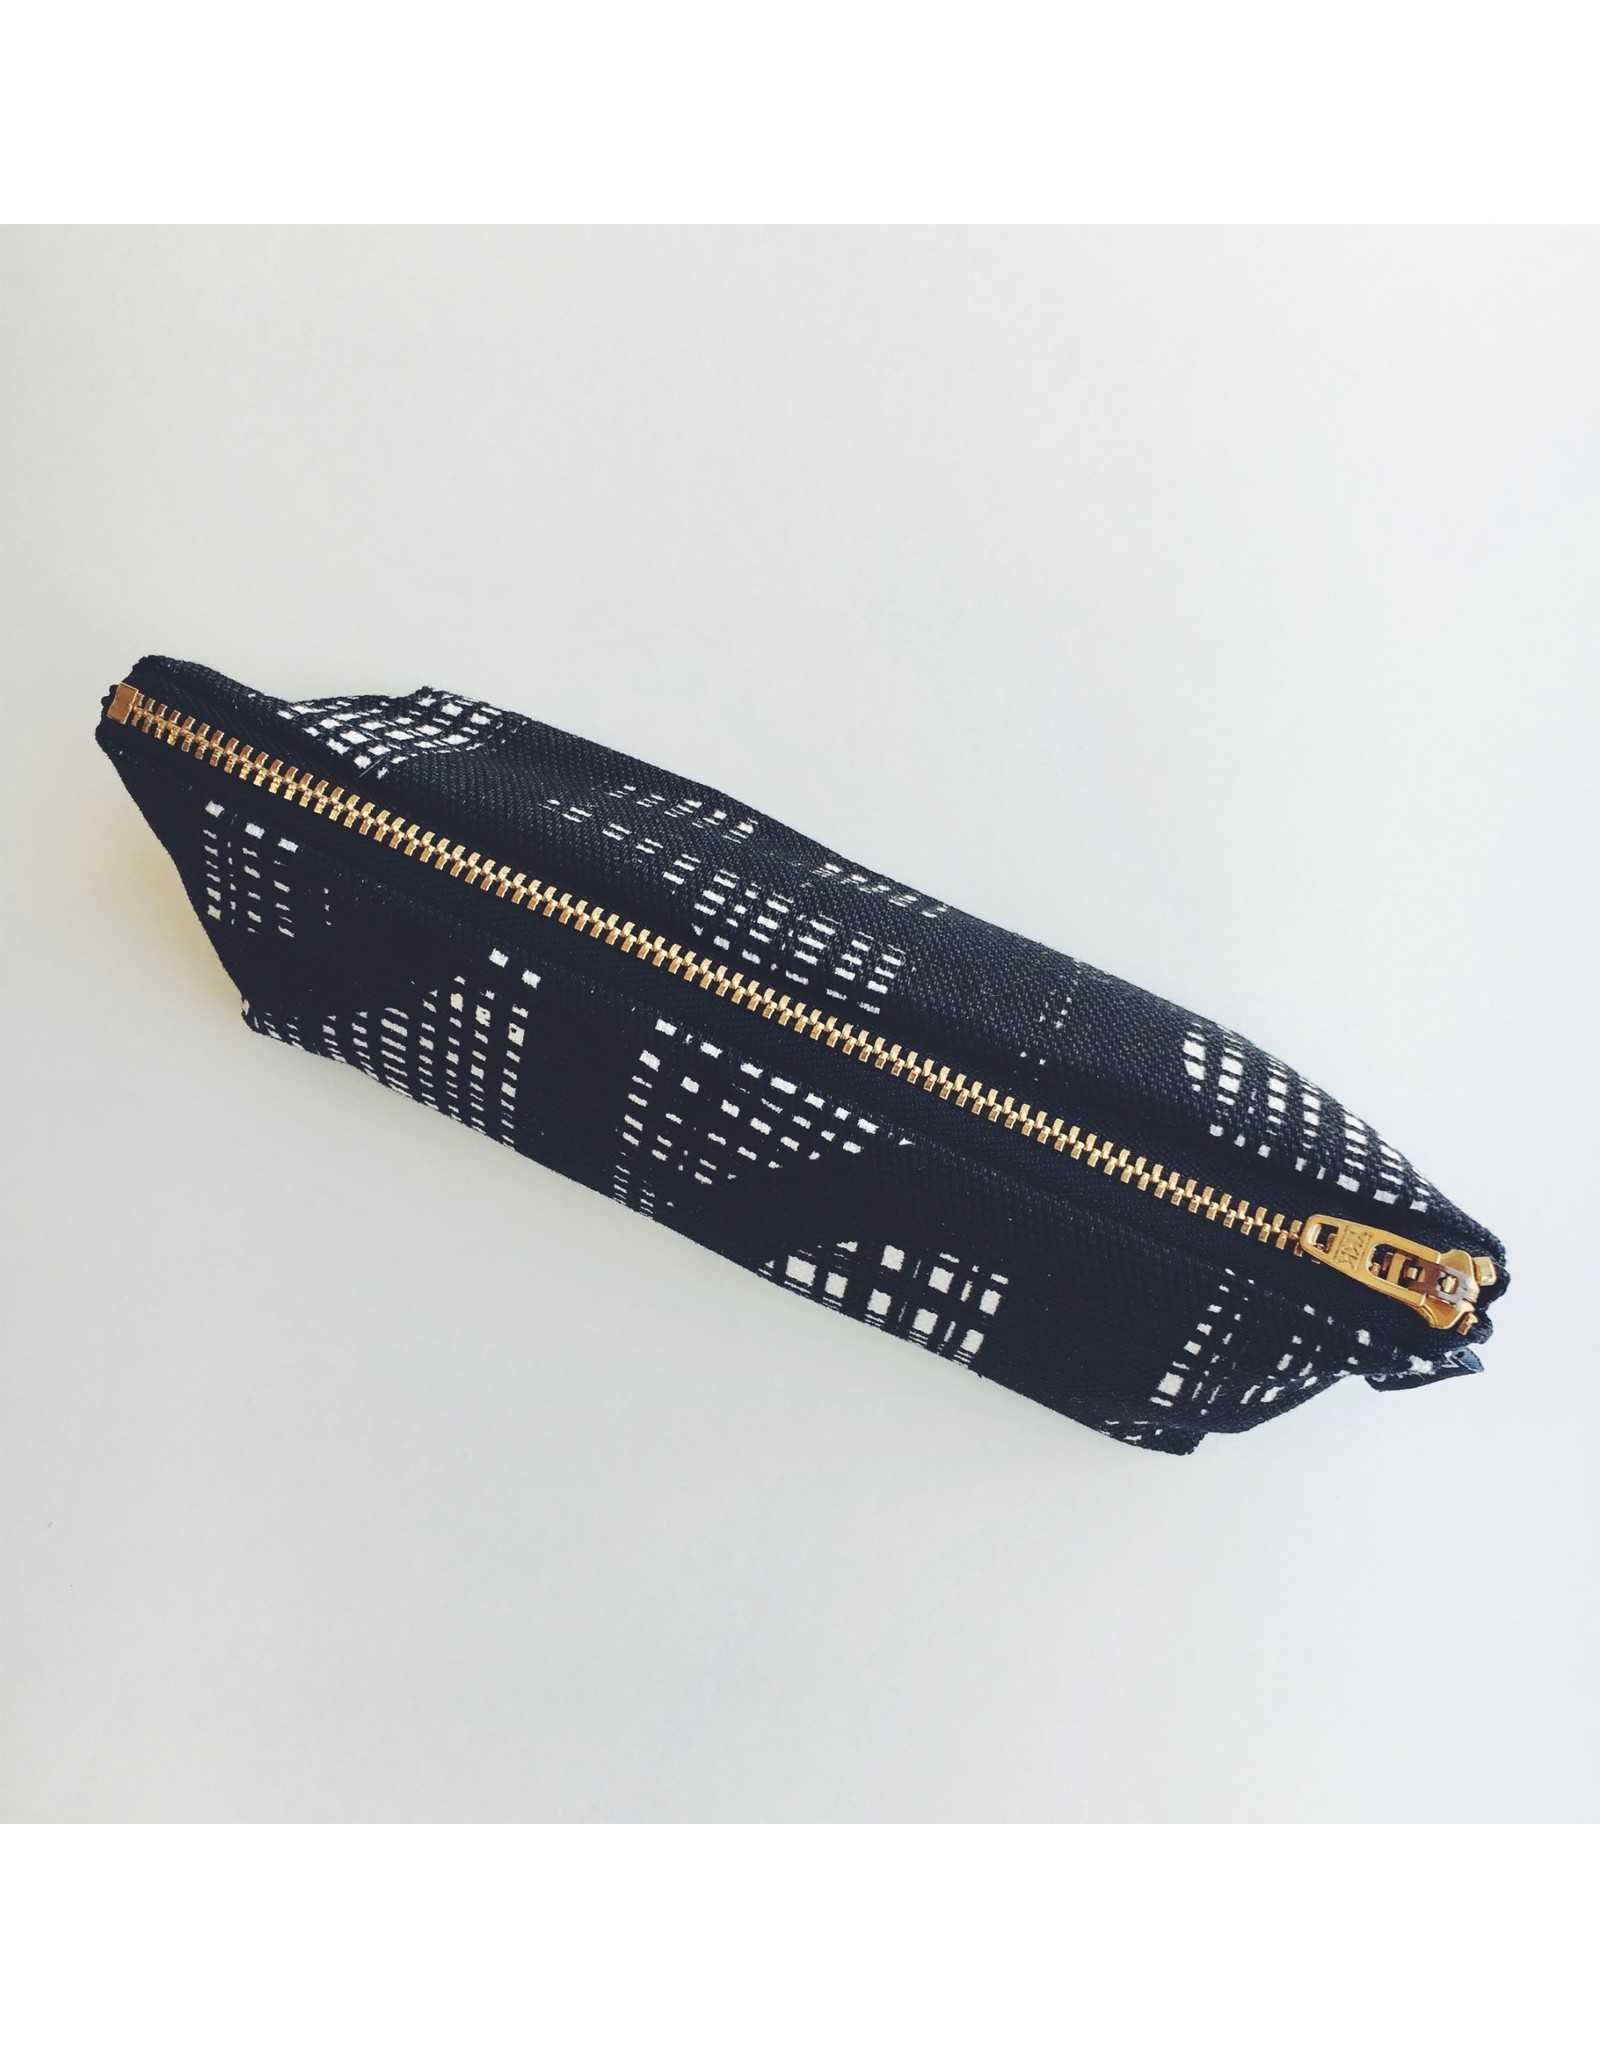 Pencil Case / Make Up Bag